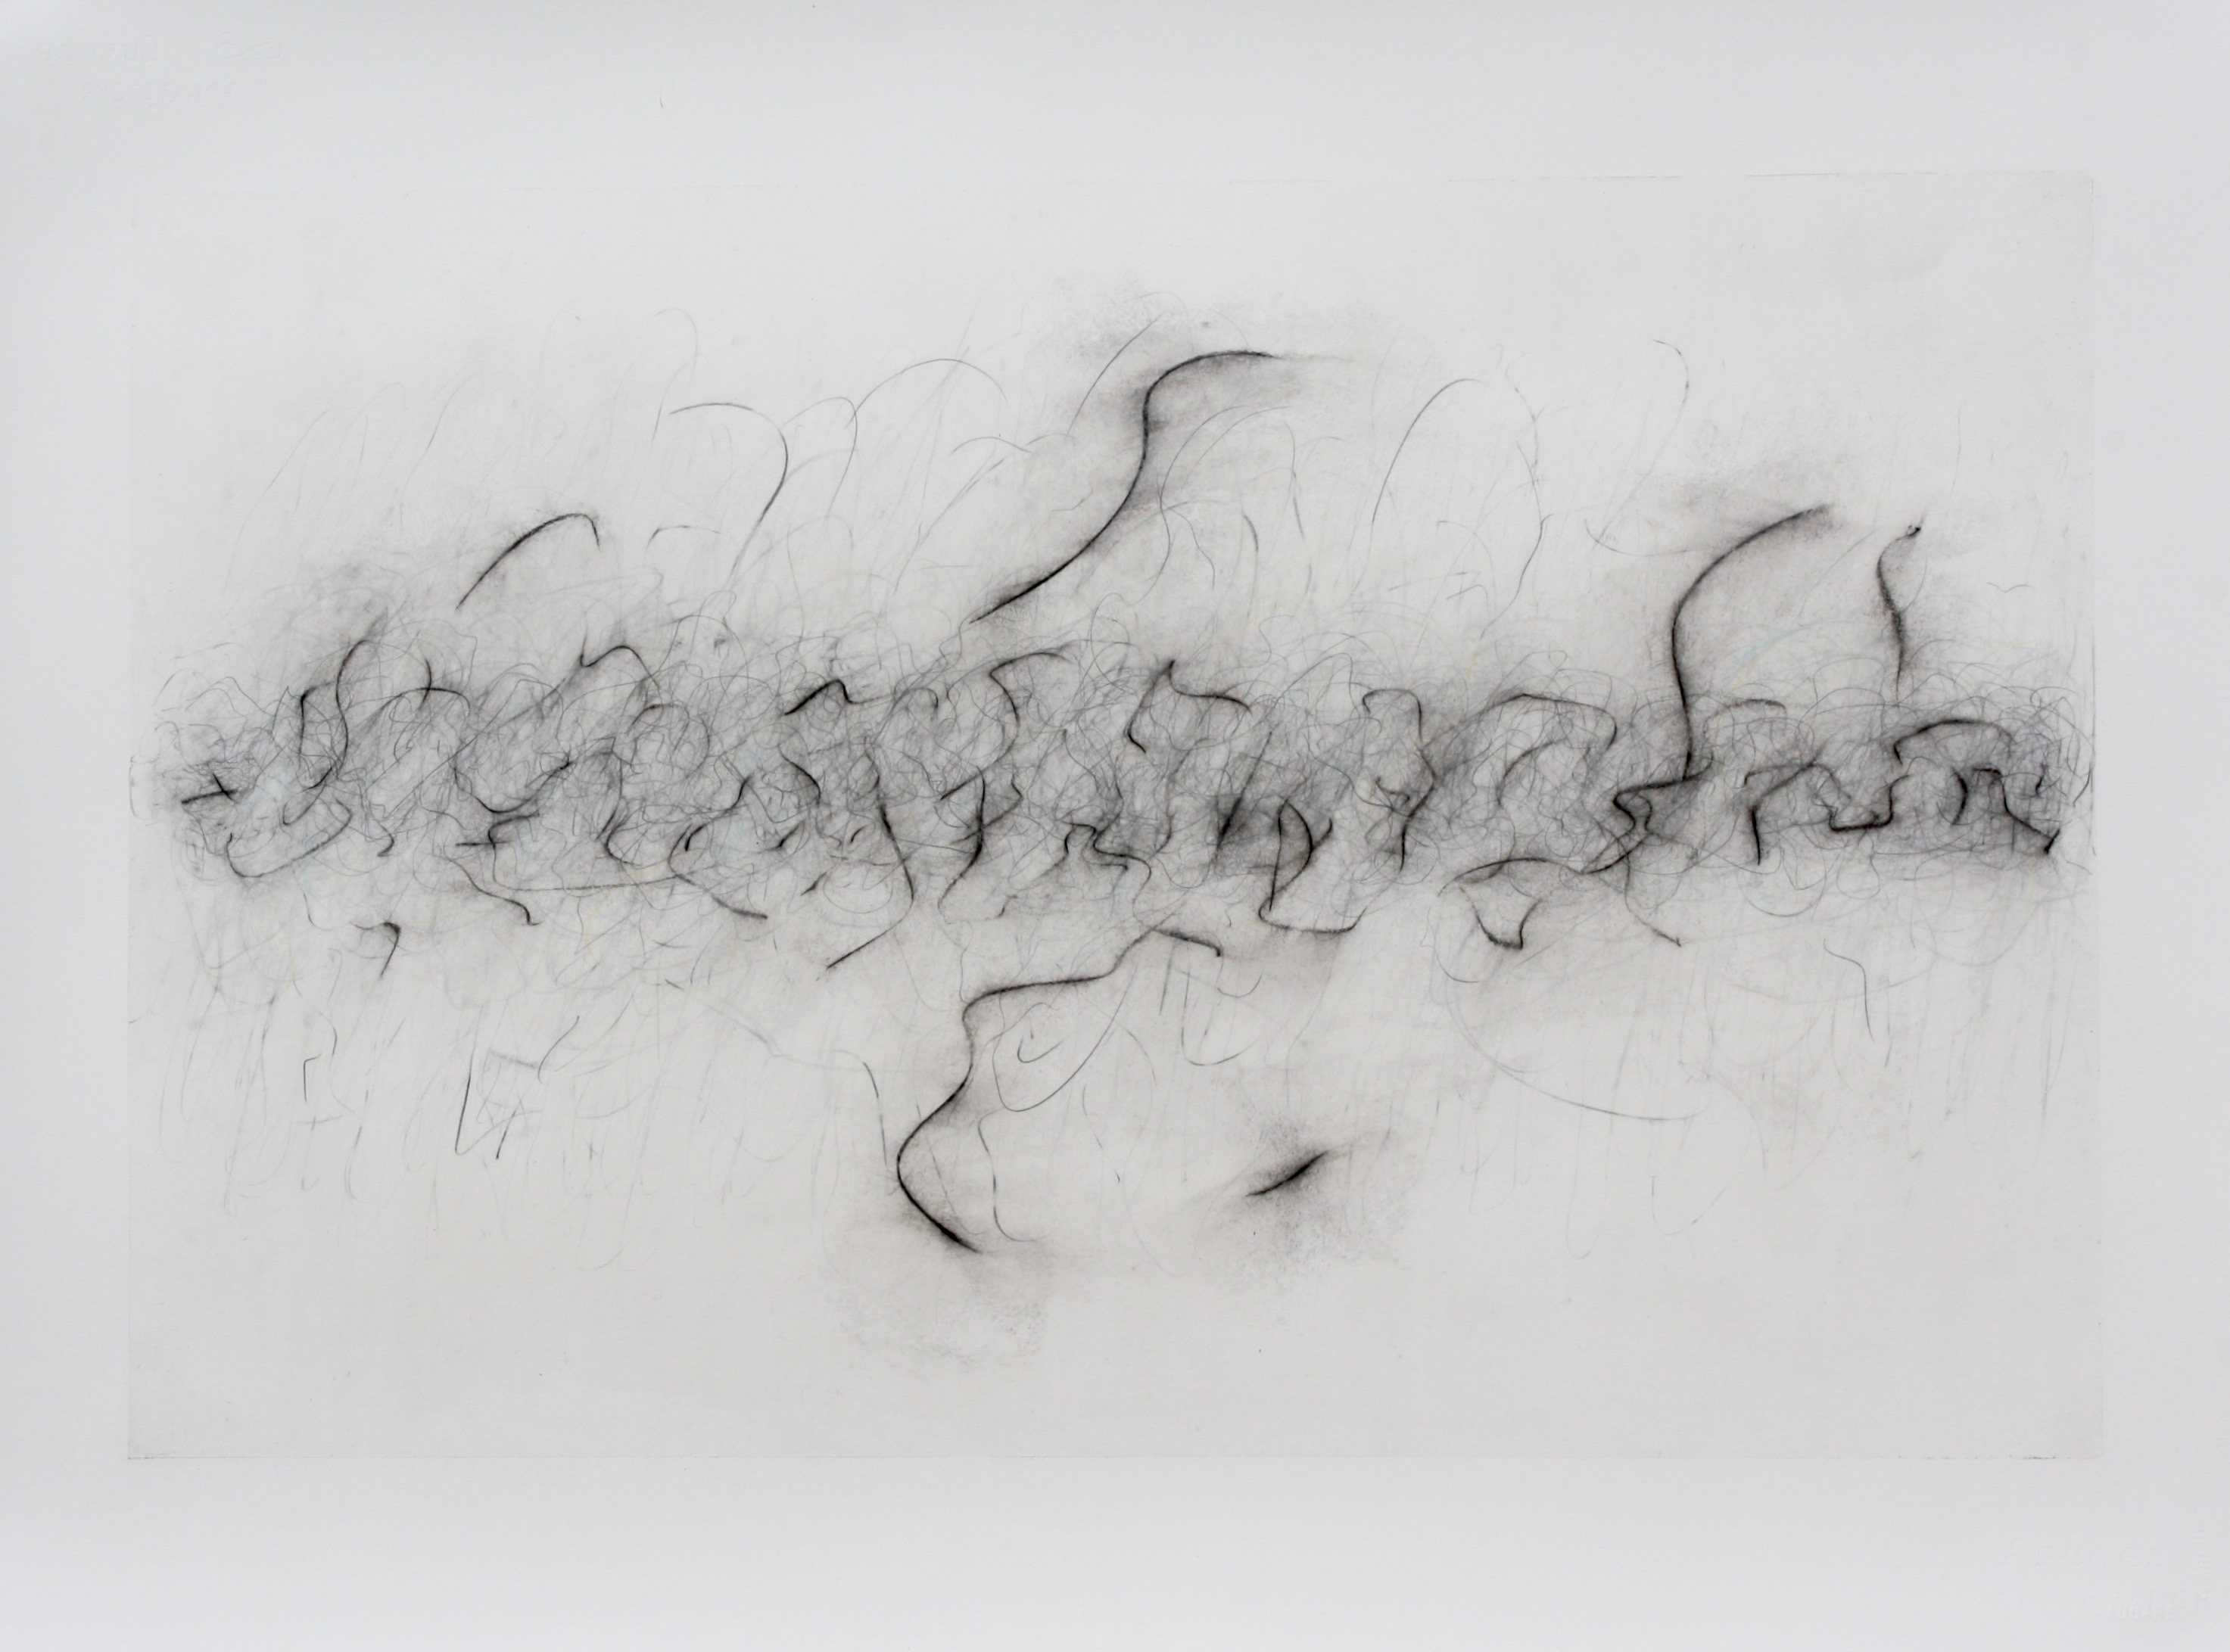 Robinson_Fiona Debussy String Quartet 3rd Movement. Graphite charcoal and mixed media 76 x 56cms